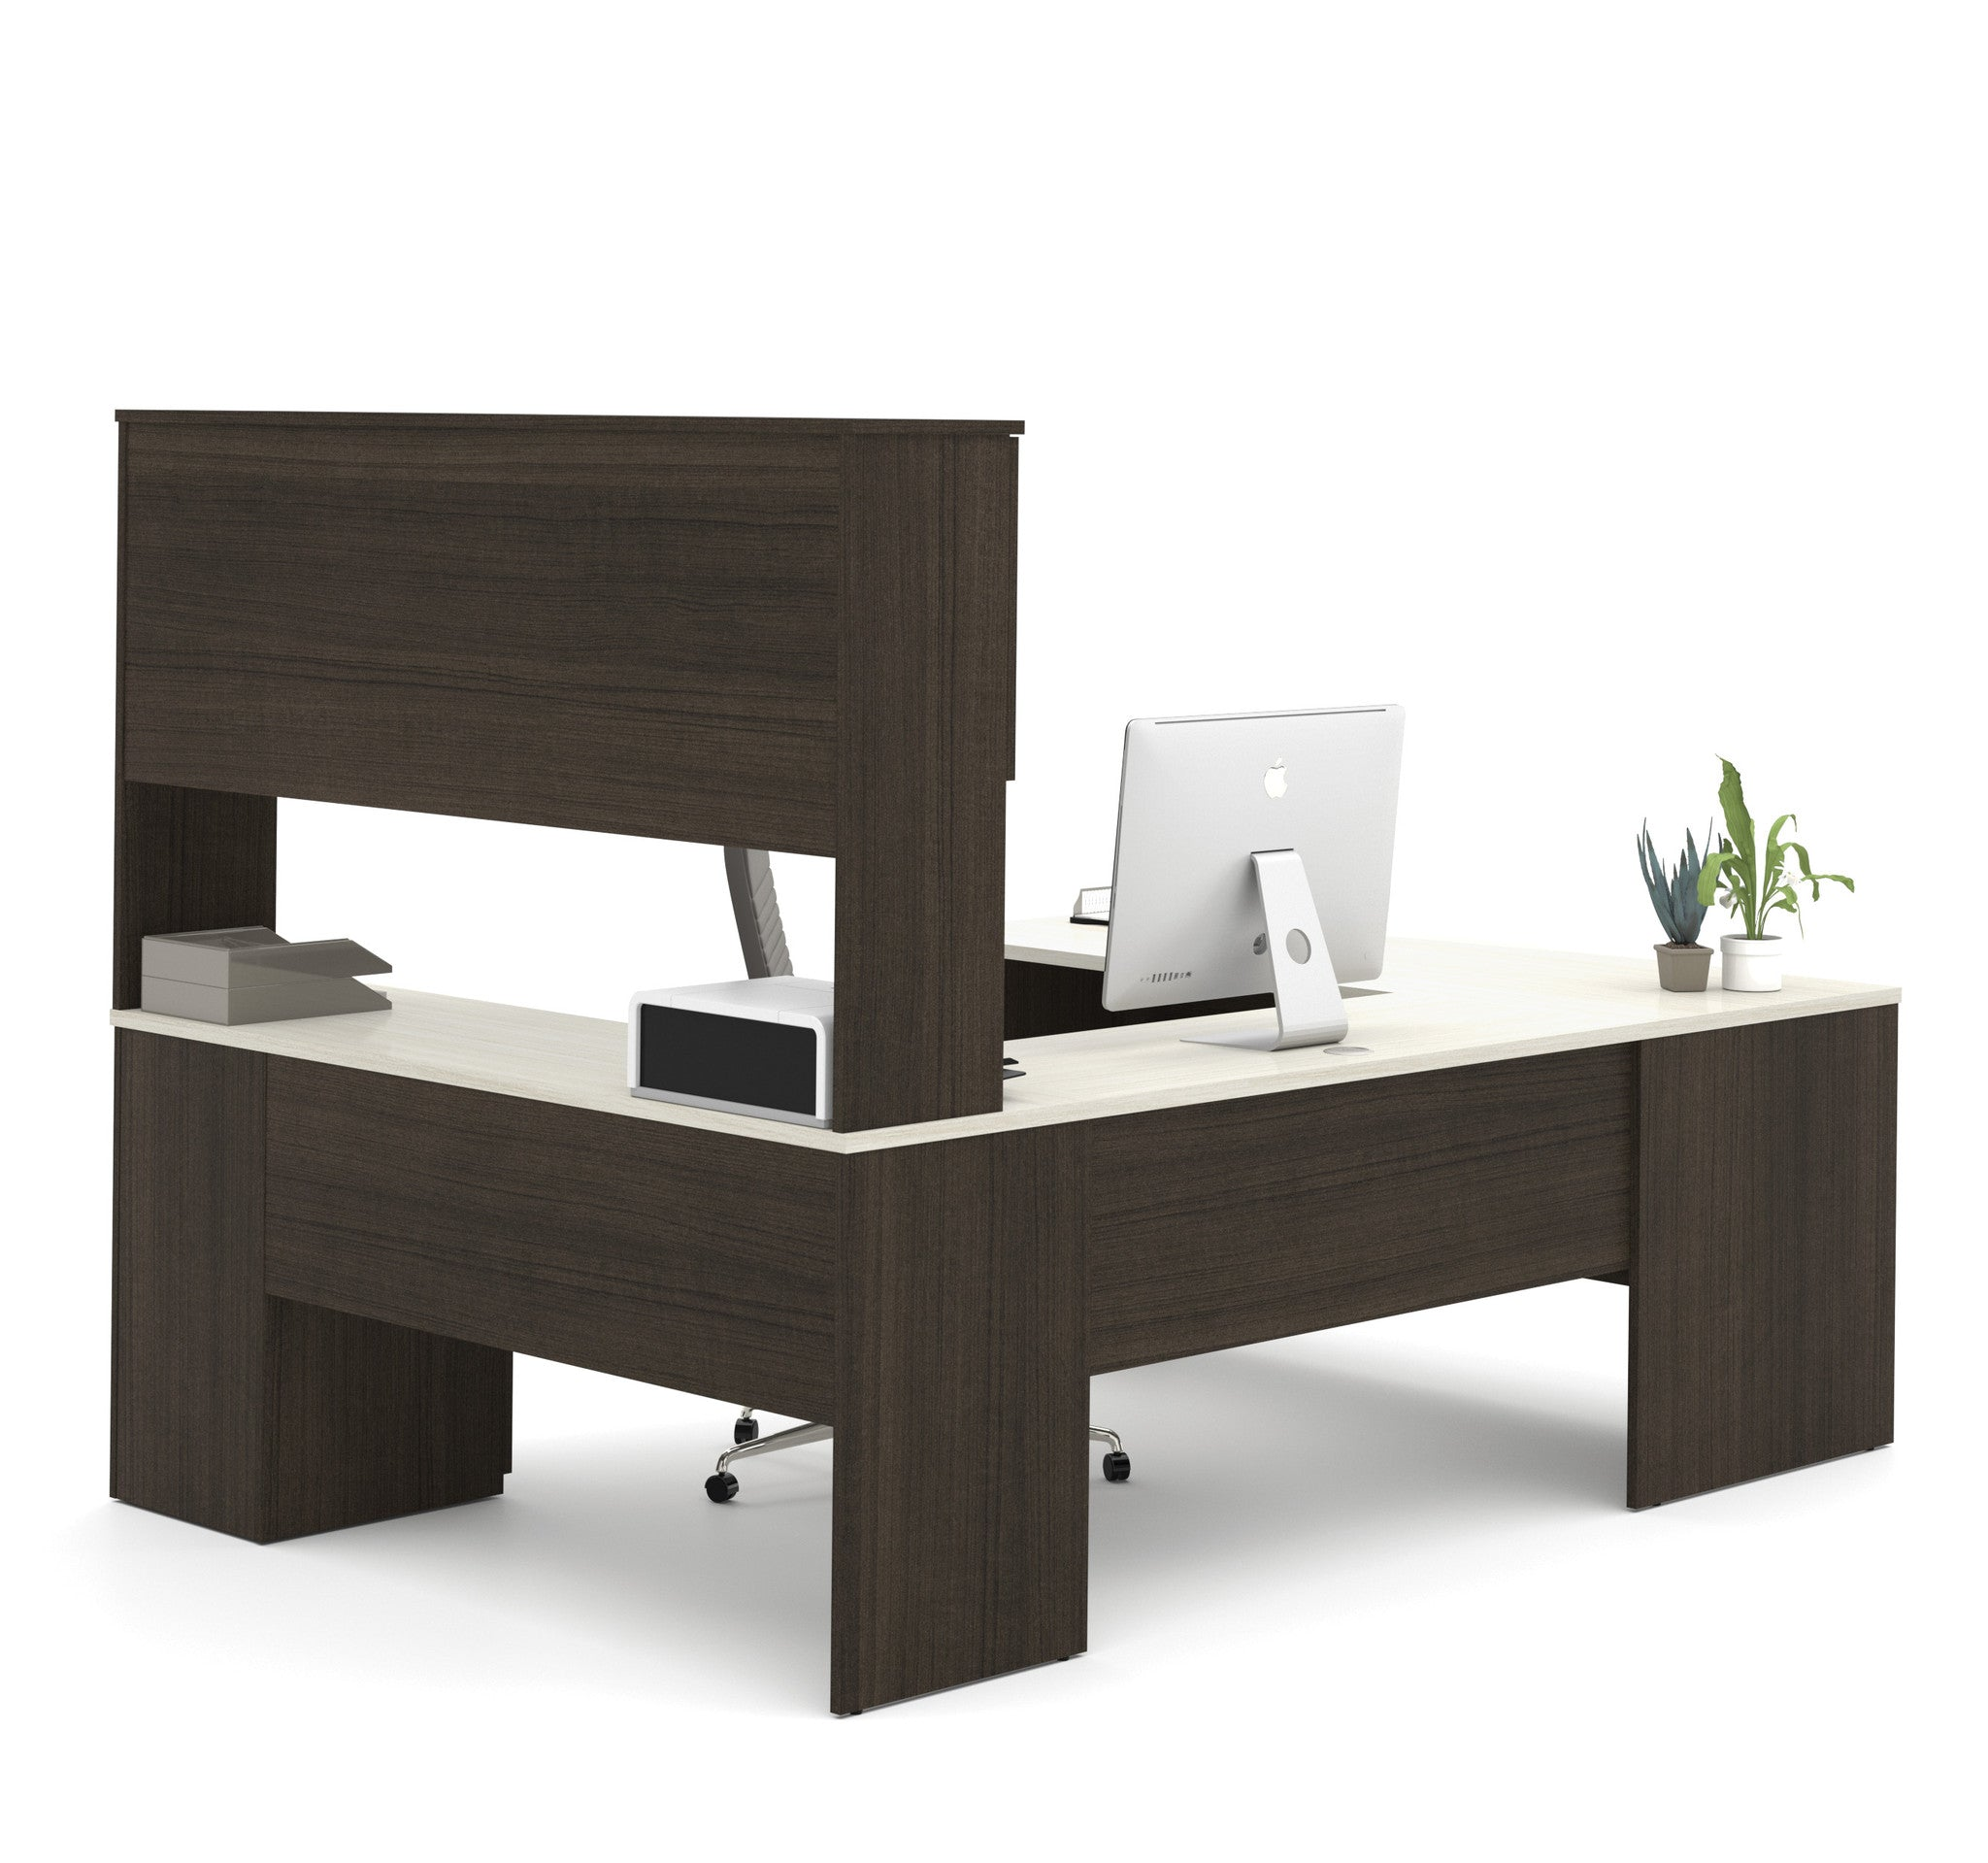 Furniture To Buy: Dark Chocolate & White Modern U-shaped Office Desk